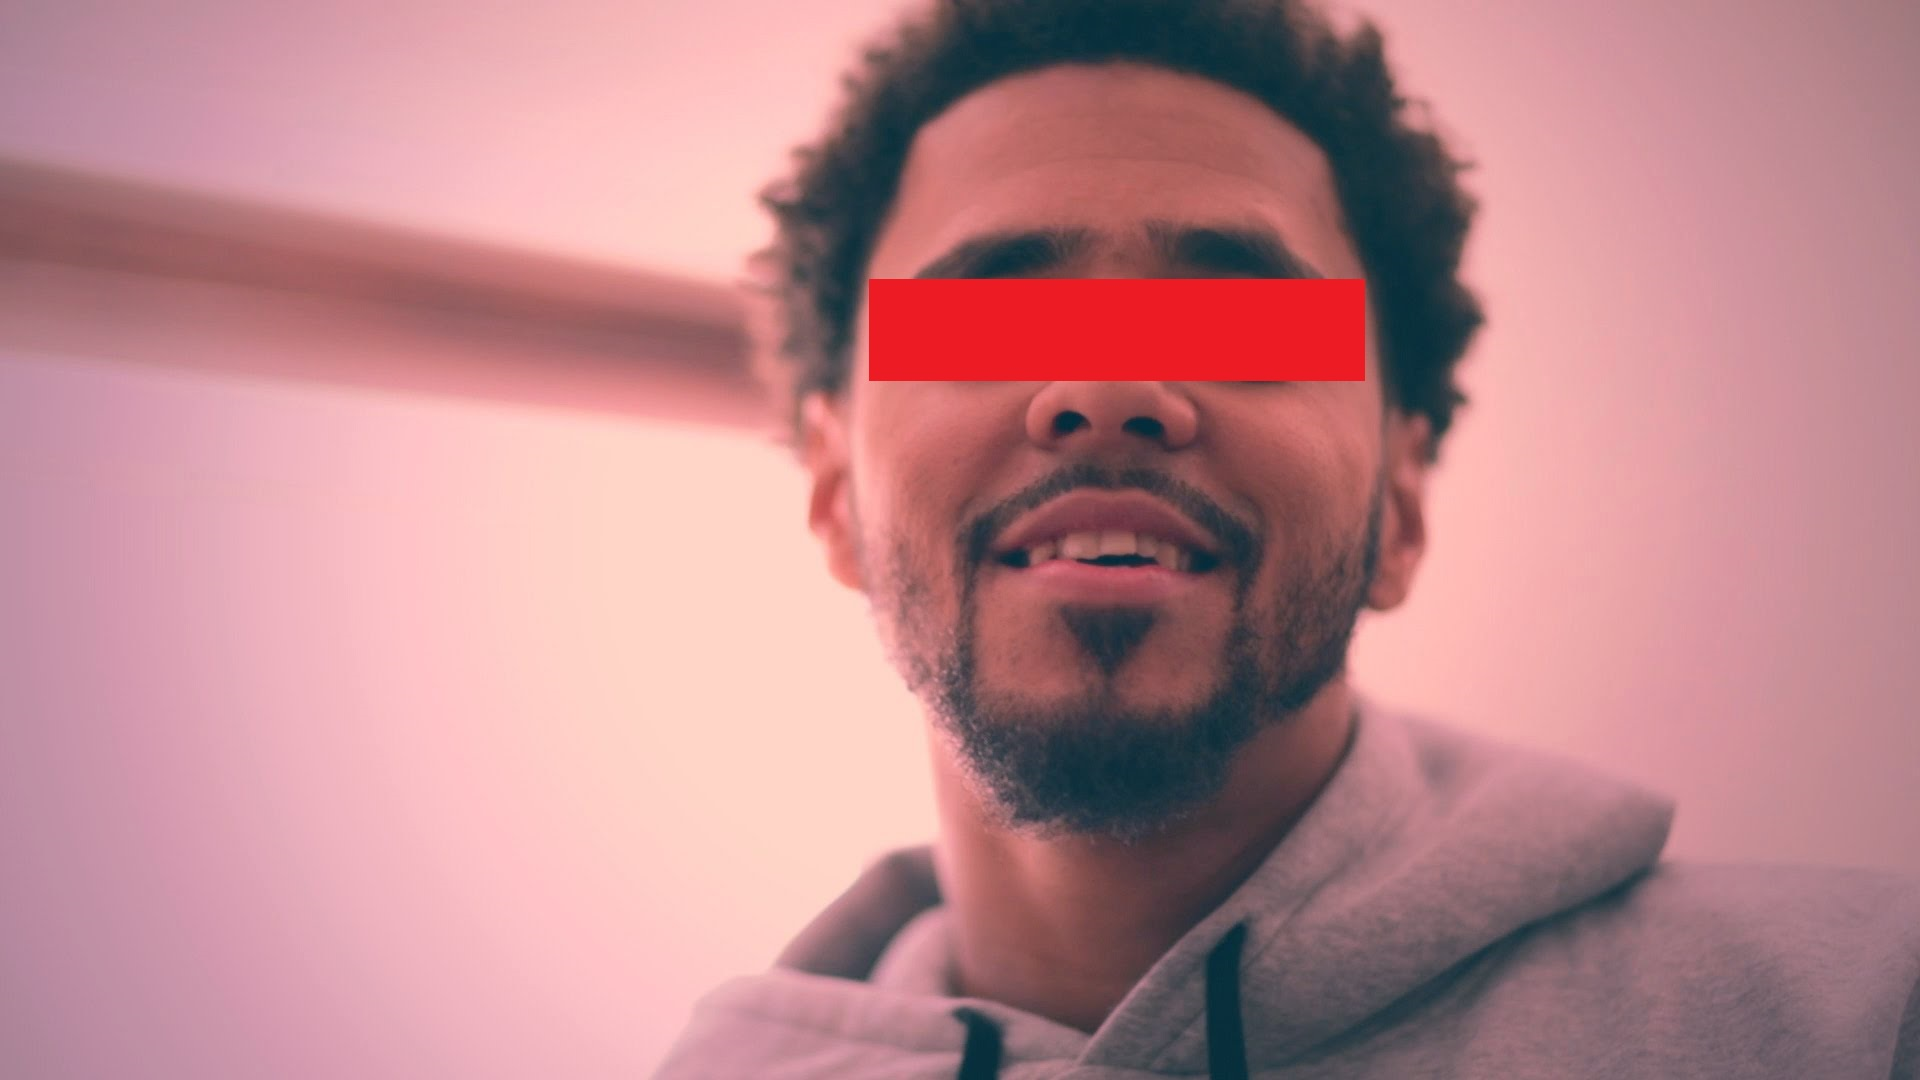 Watch J. Cole Perform Notorious B.I.G.'s Classic 'Hypnotize' Joint maxresdefault 1 1